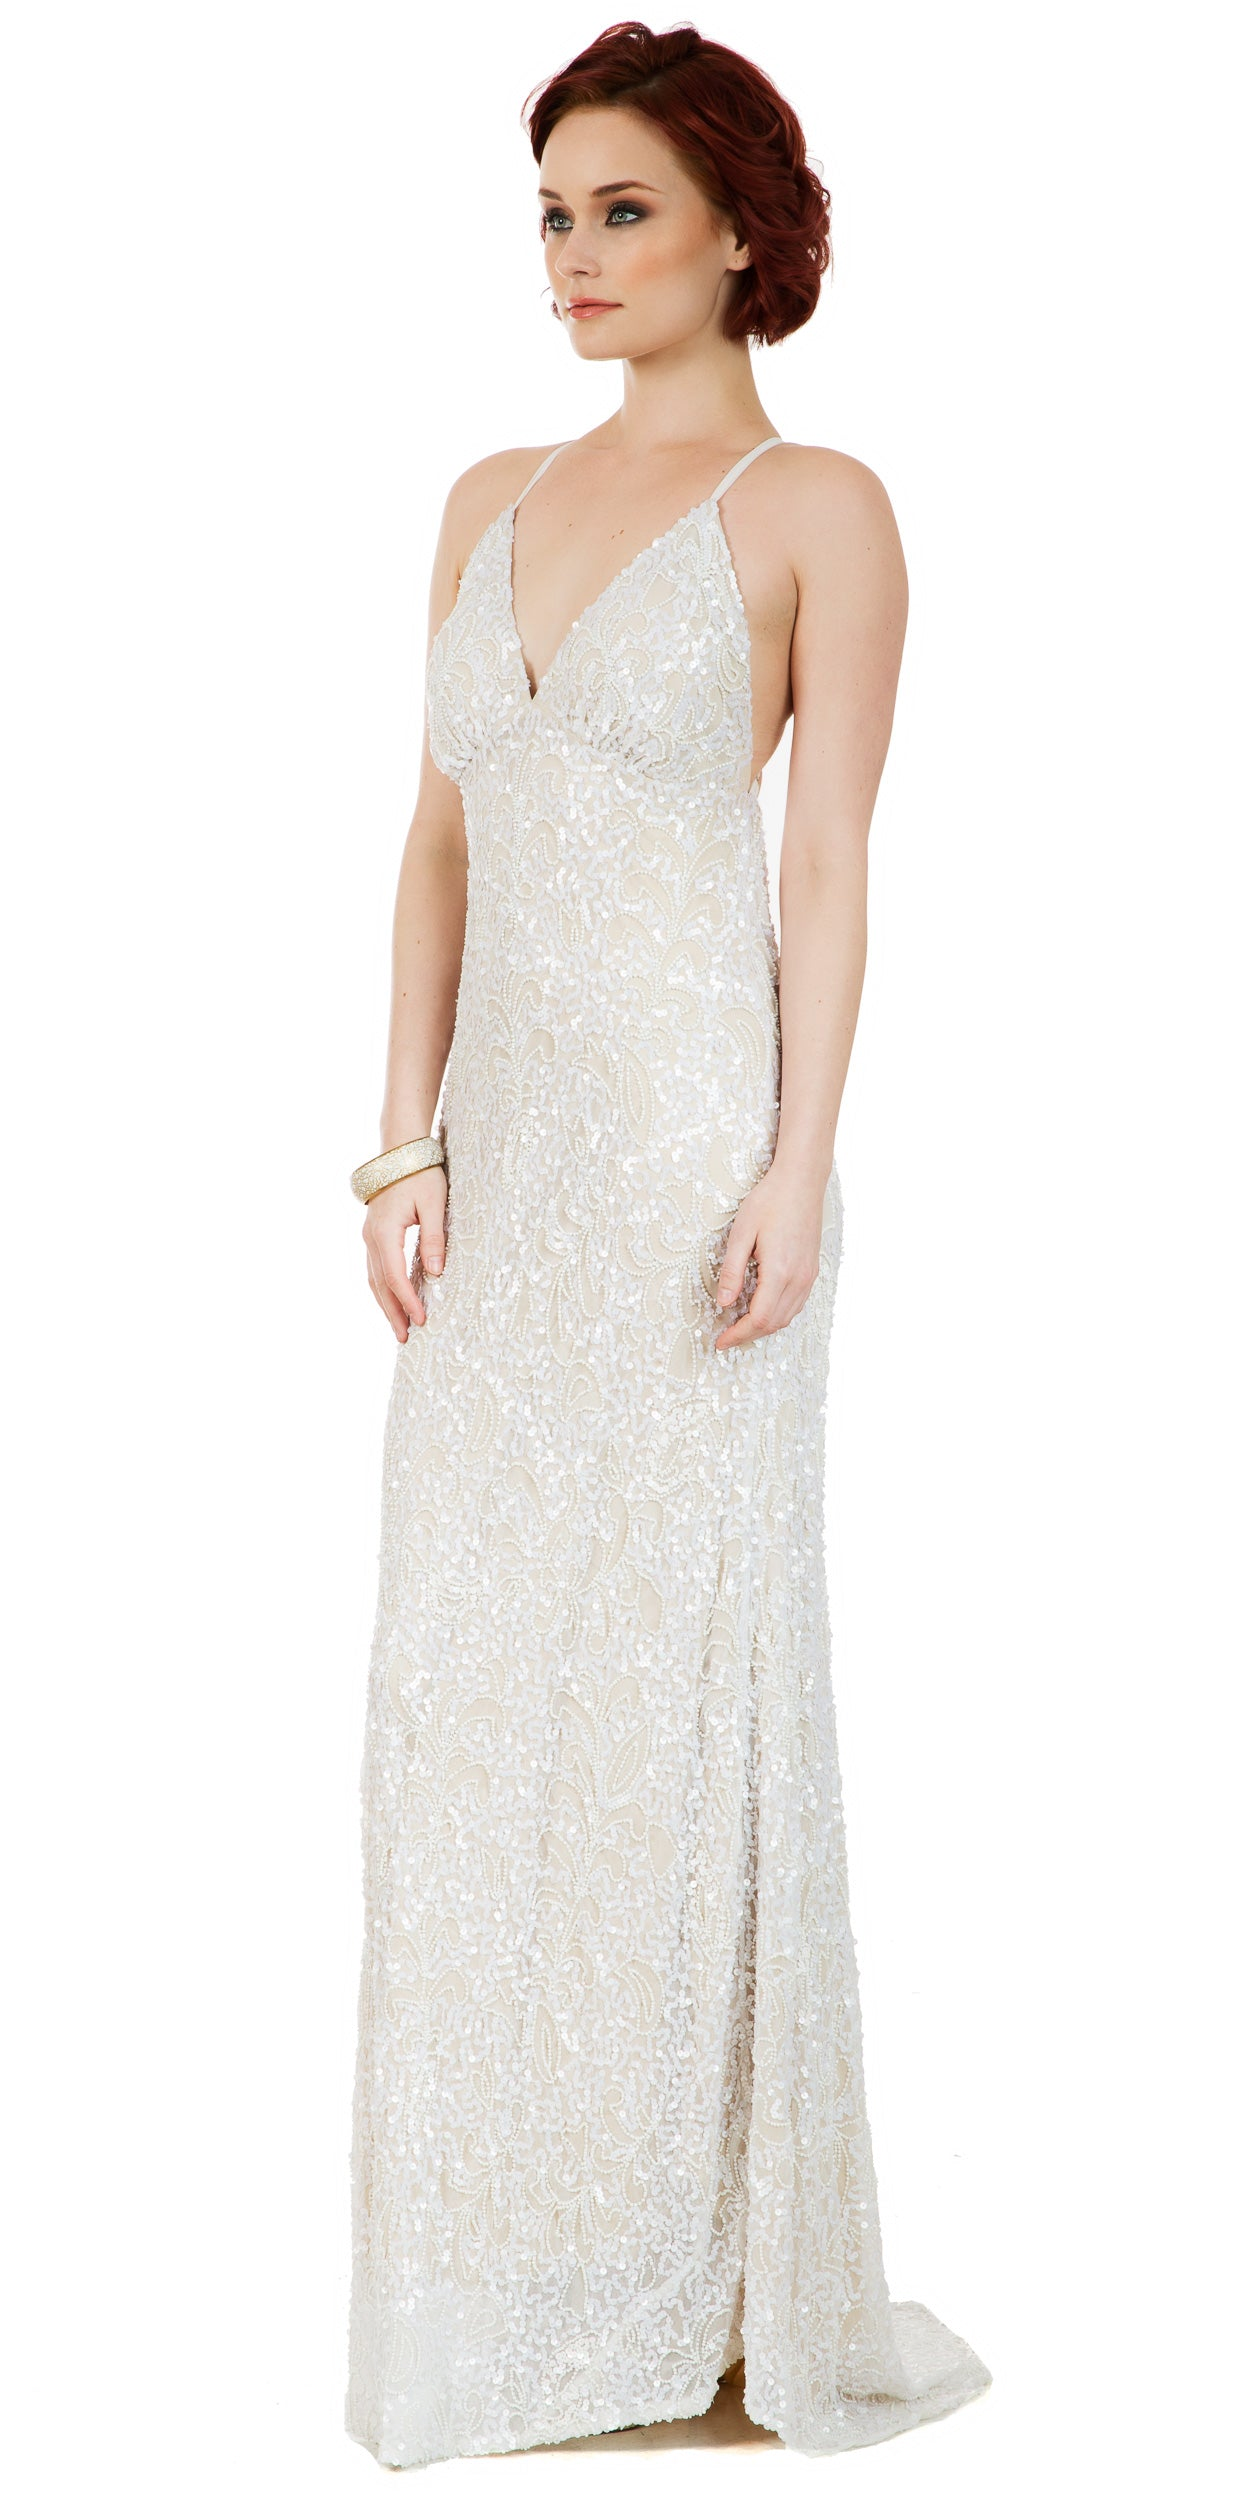 Image of Spaghetti Straps V-neck Sequins Long Formal Prom Dress in Ivory/Gold